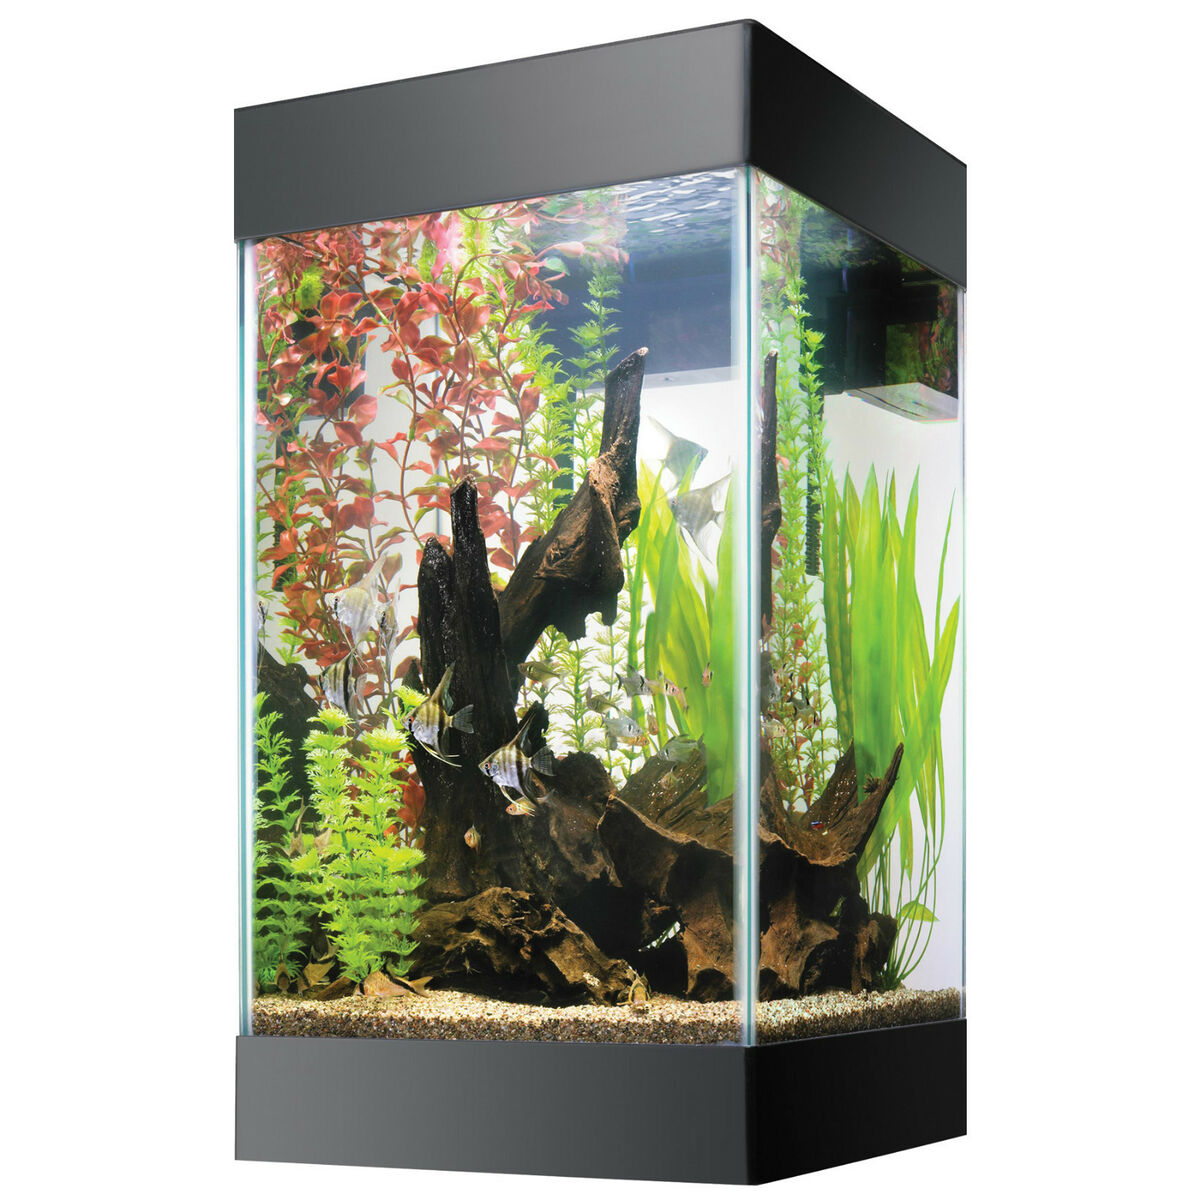 aqueon 15 gallon column tropical fish tank aquarium w